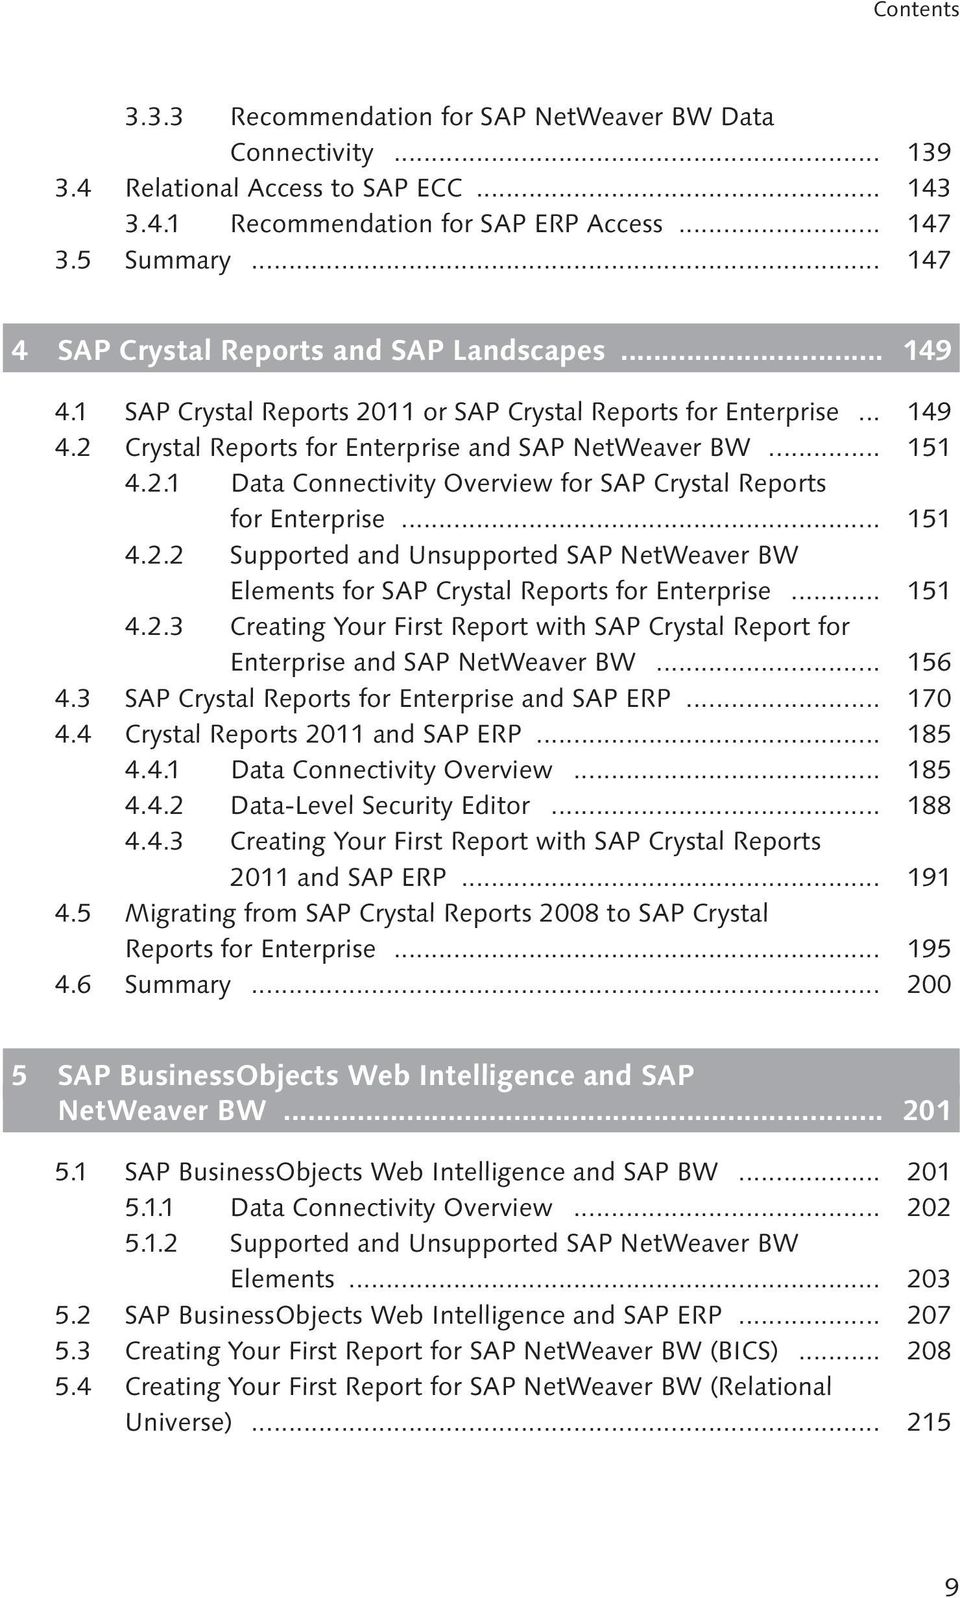 .. 151 4.2.2 Supported and Unsupported SAP NetWeaver BW Elements for SAP Crystal Reports for Enterprise... 151 4.2.3 Creating Your First Report with SAP Crystal Report for Enterprise and SAP NetWeaver BW.